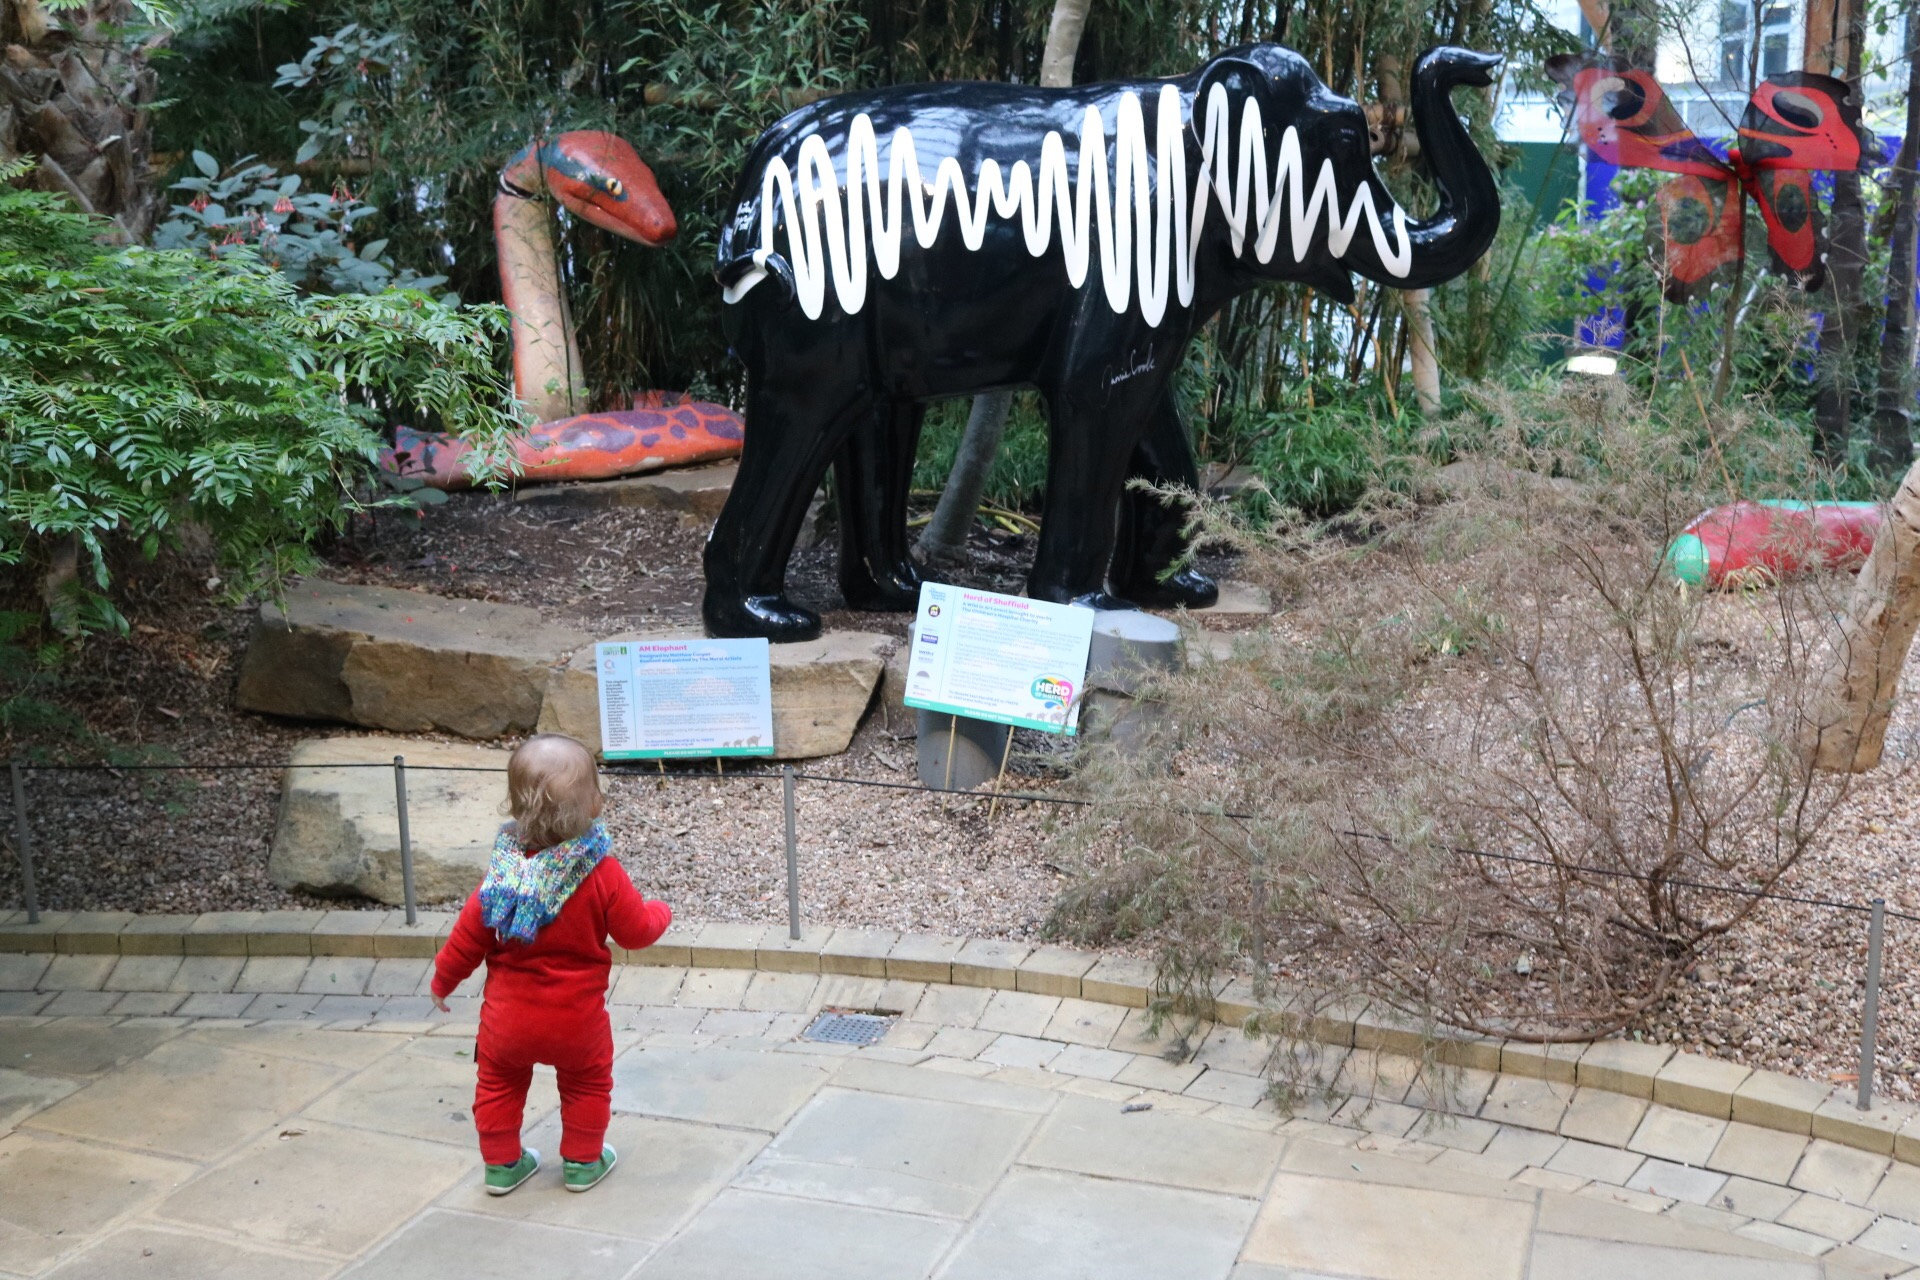 Sheffield winter gardens toddler Things to do in Sheffield with a toddler